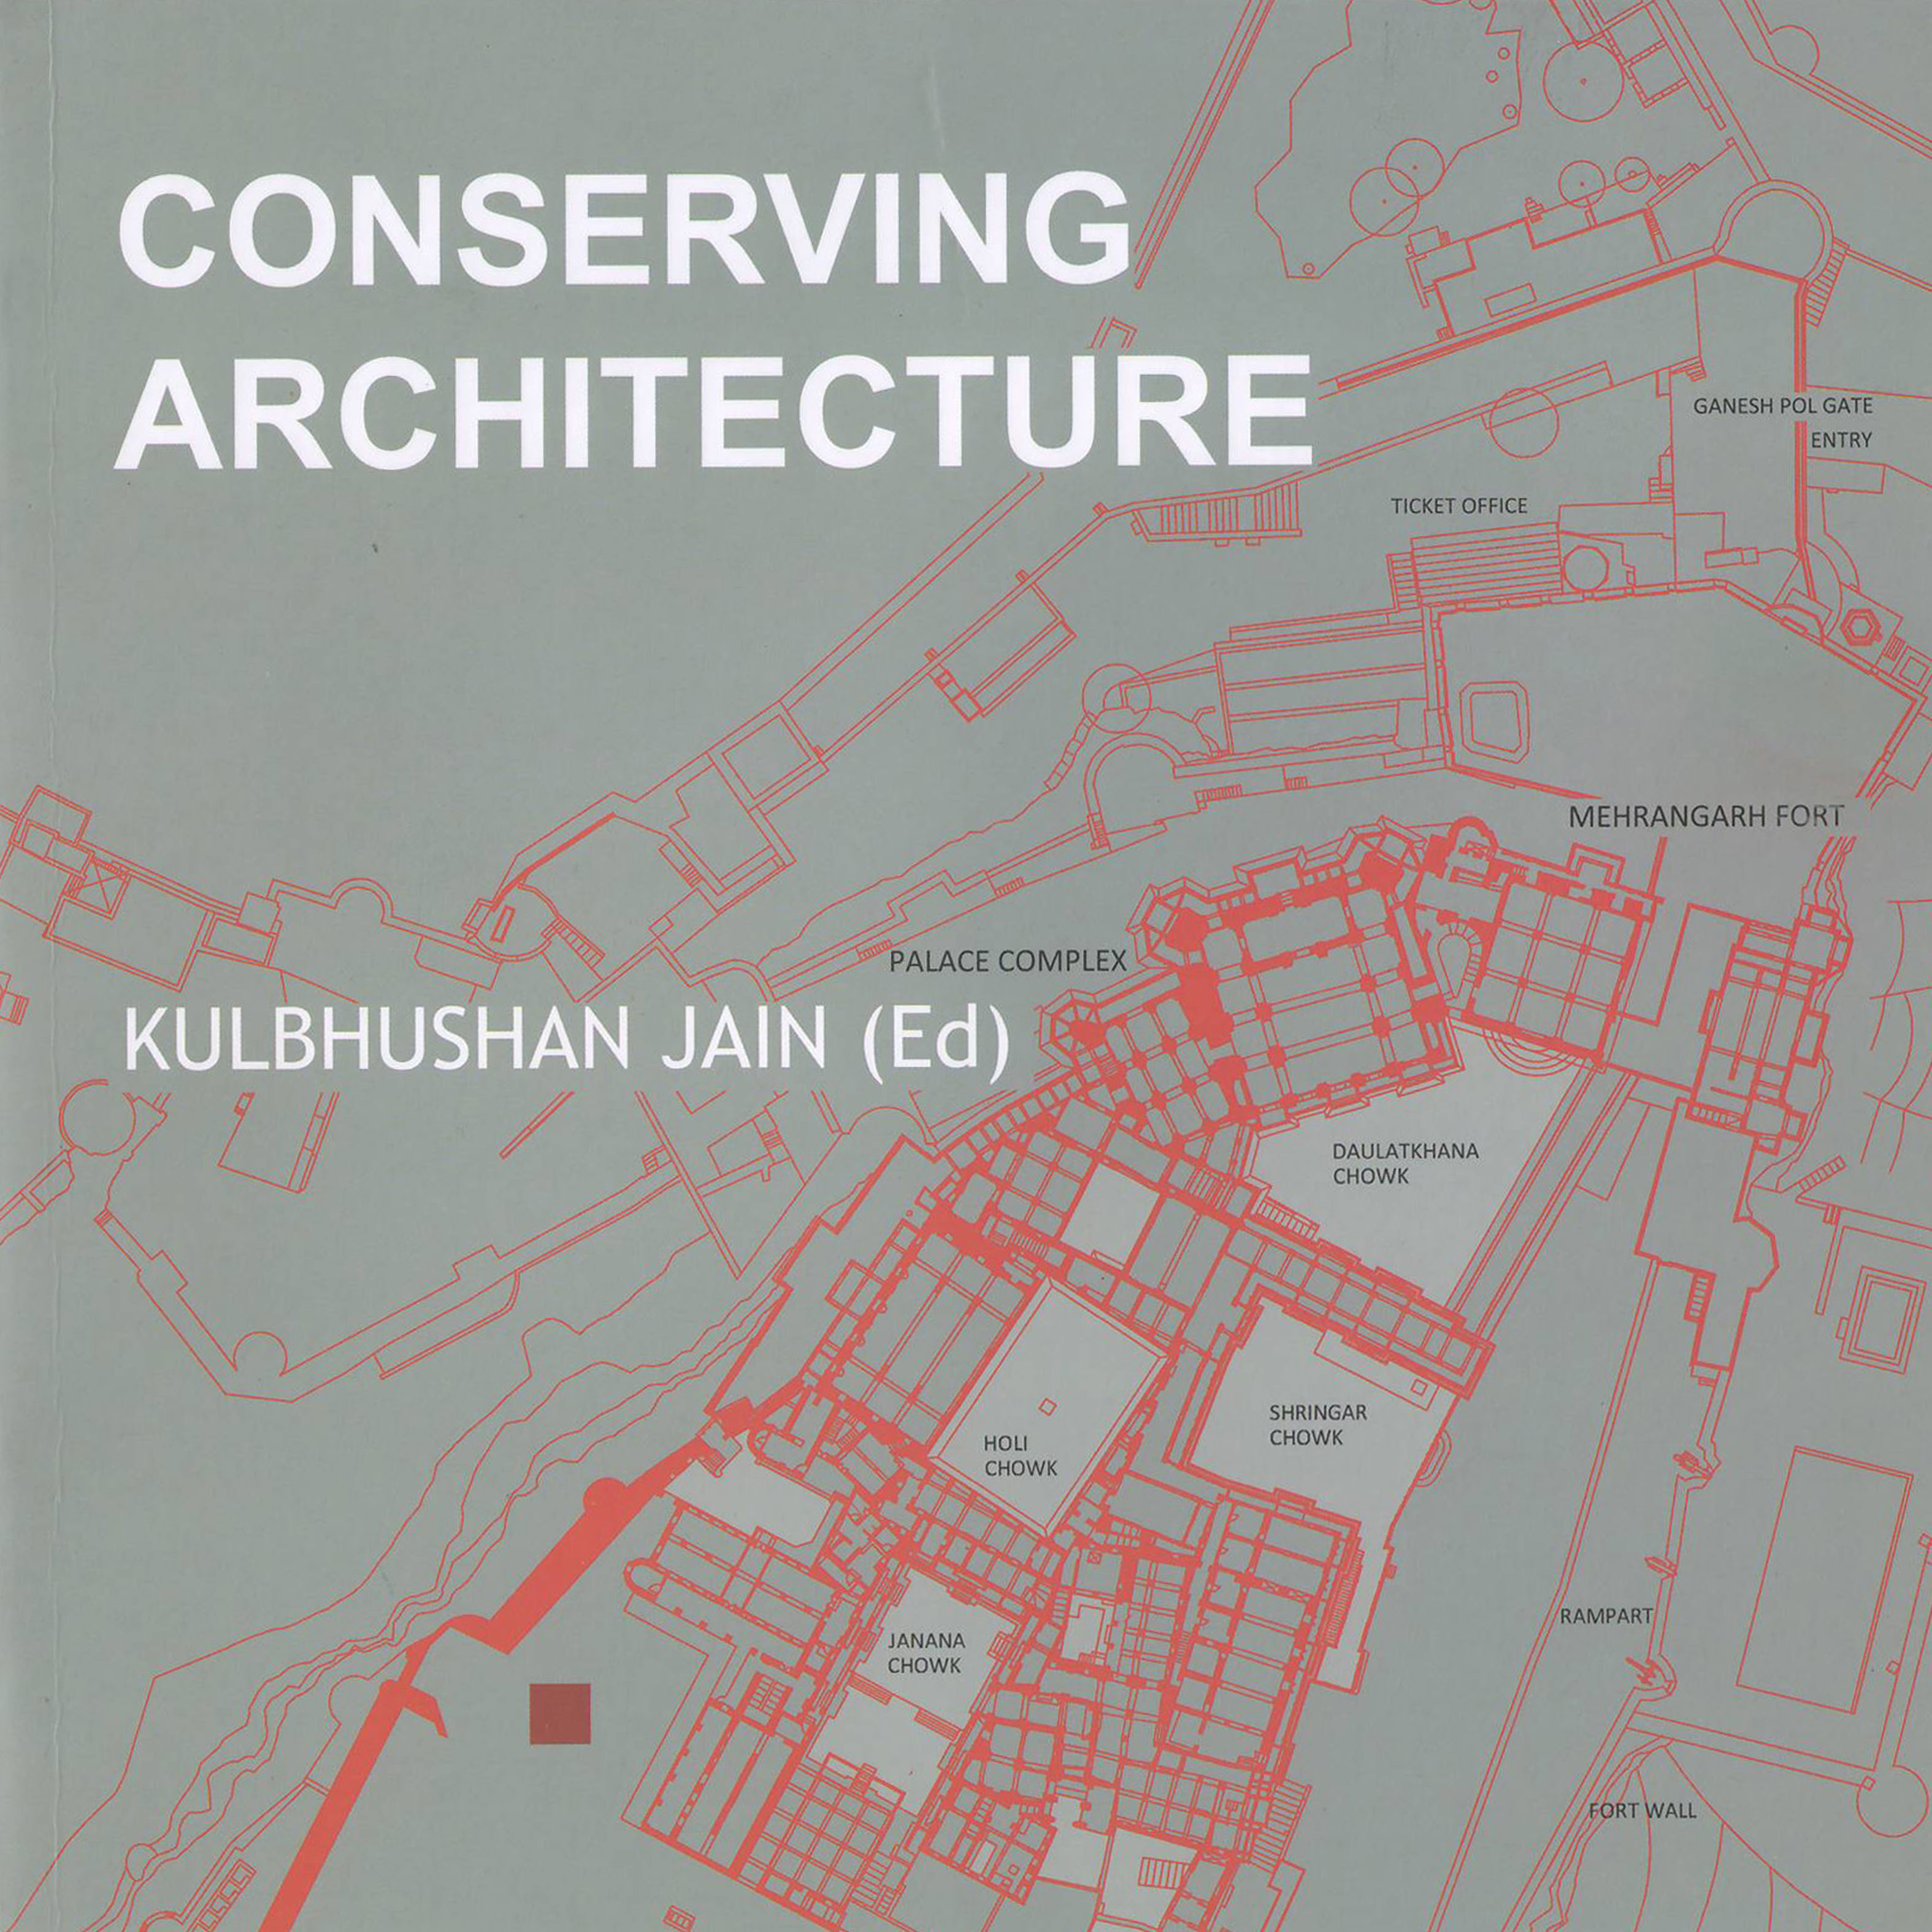 Conserving Architecture by Kulbhushan Jain (Ed); featuring Nalanda to Louis Kahn by Brinda Somaya - January 2017